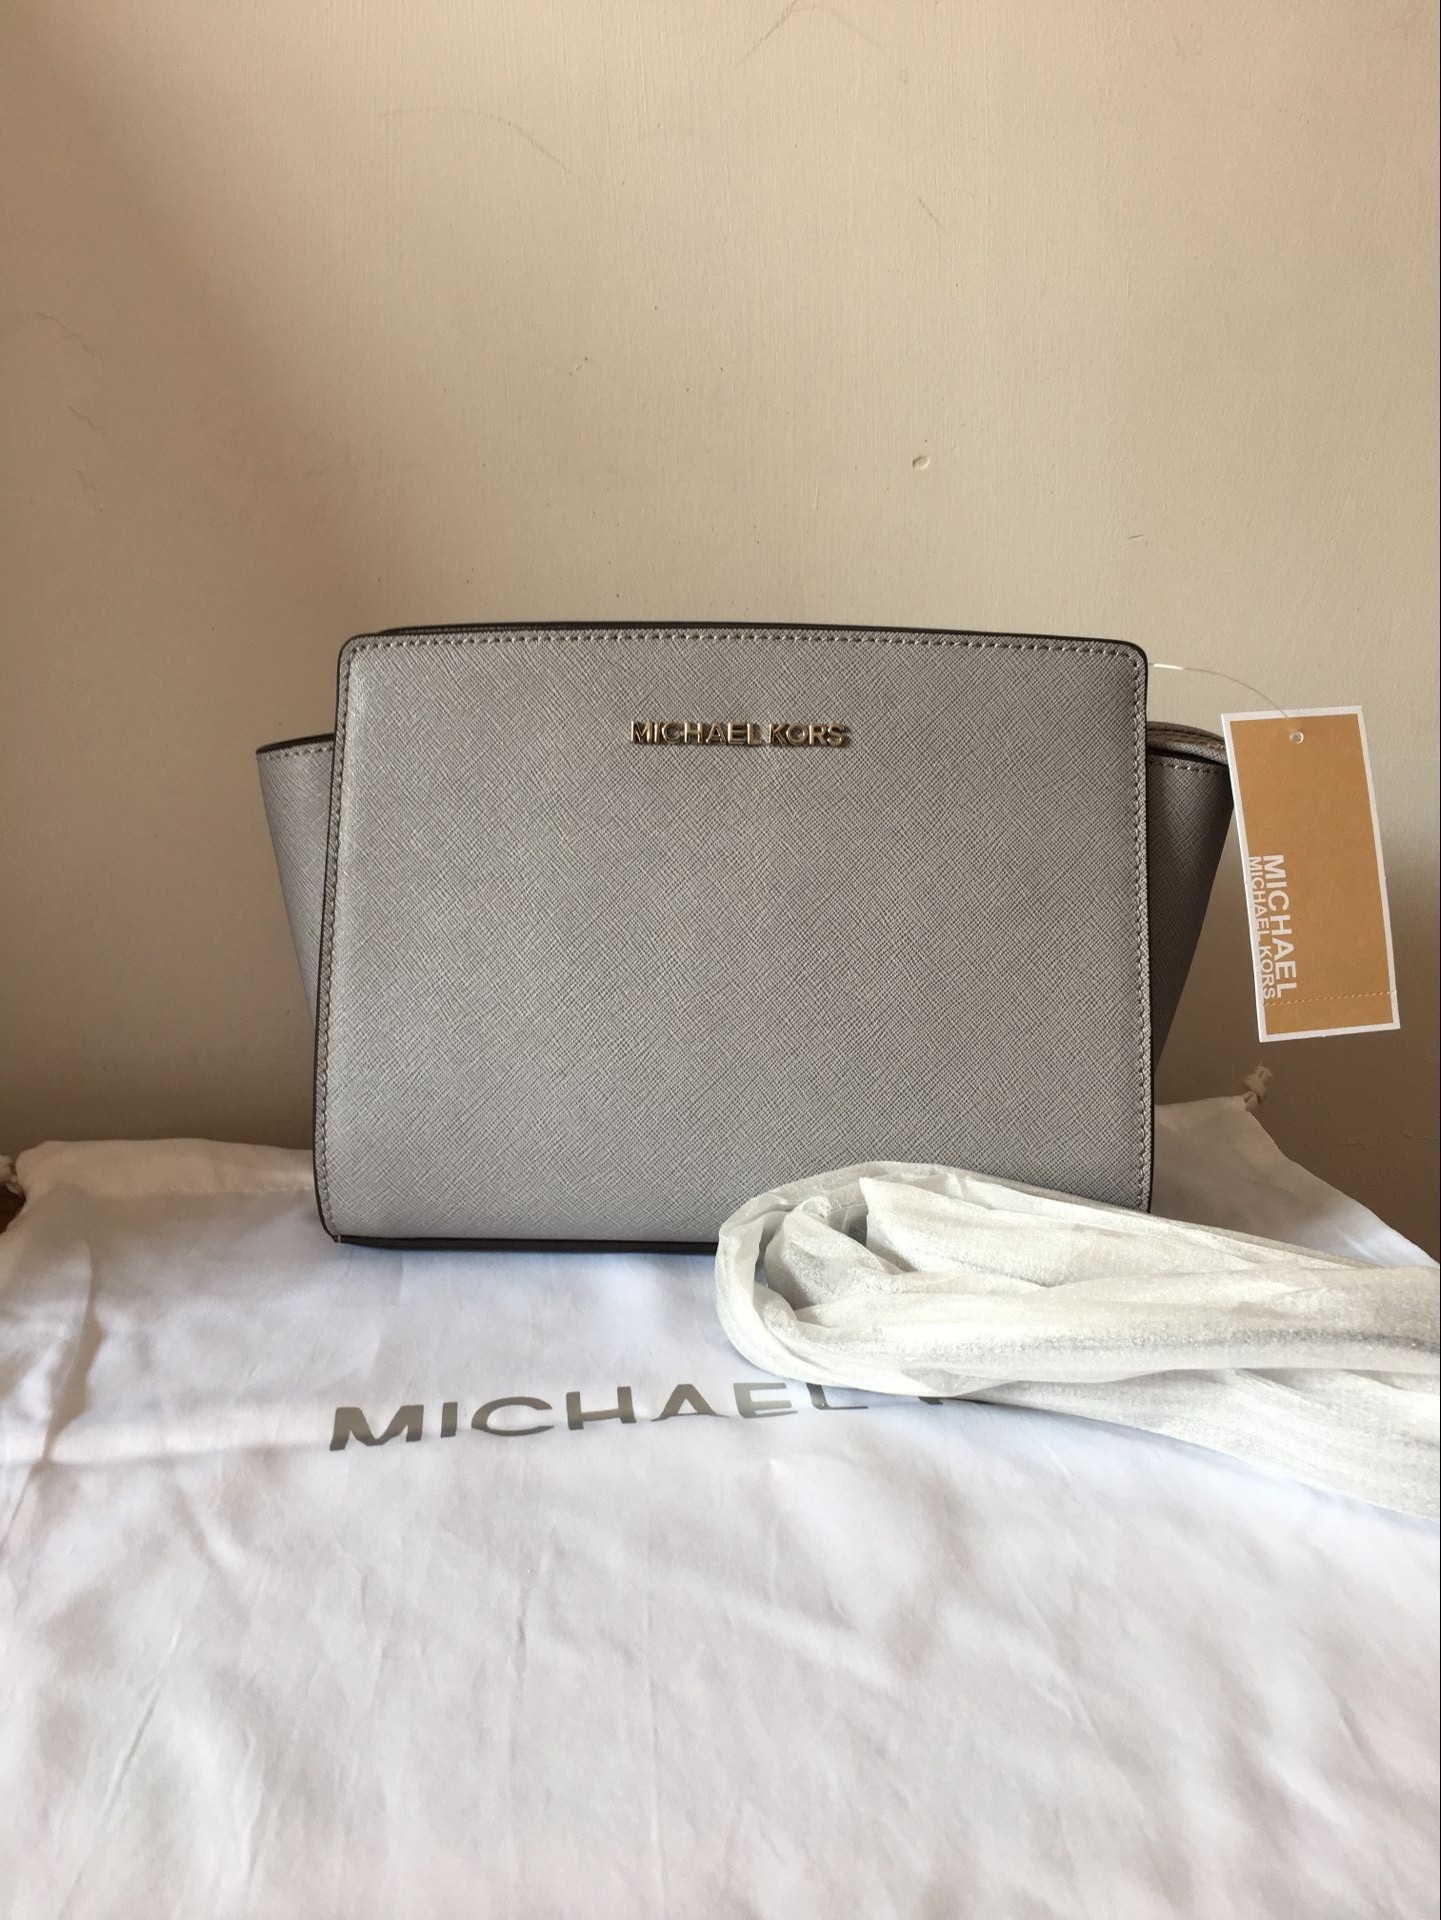 1b560acf5ed3 MICHAEL KORS Selma Medium Messenger Crossbody Bag Pearl Grey Authentic on  Storenvy